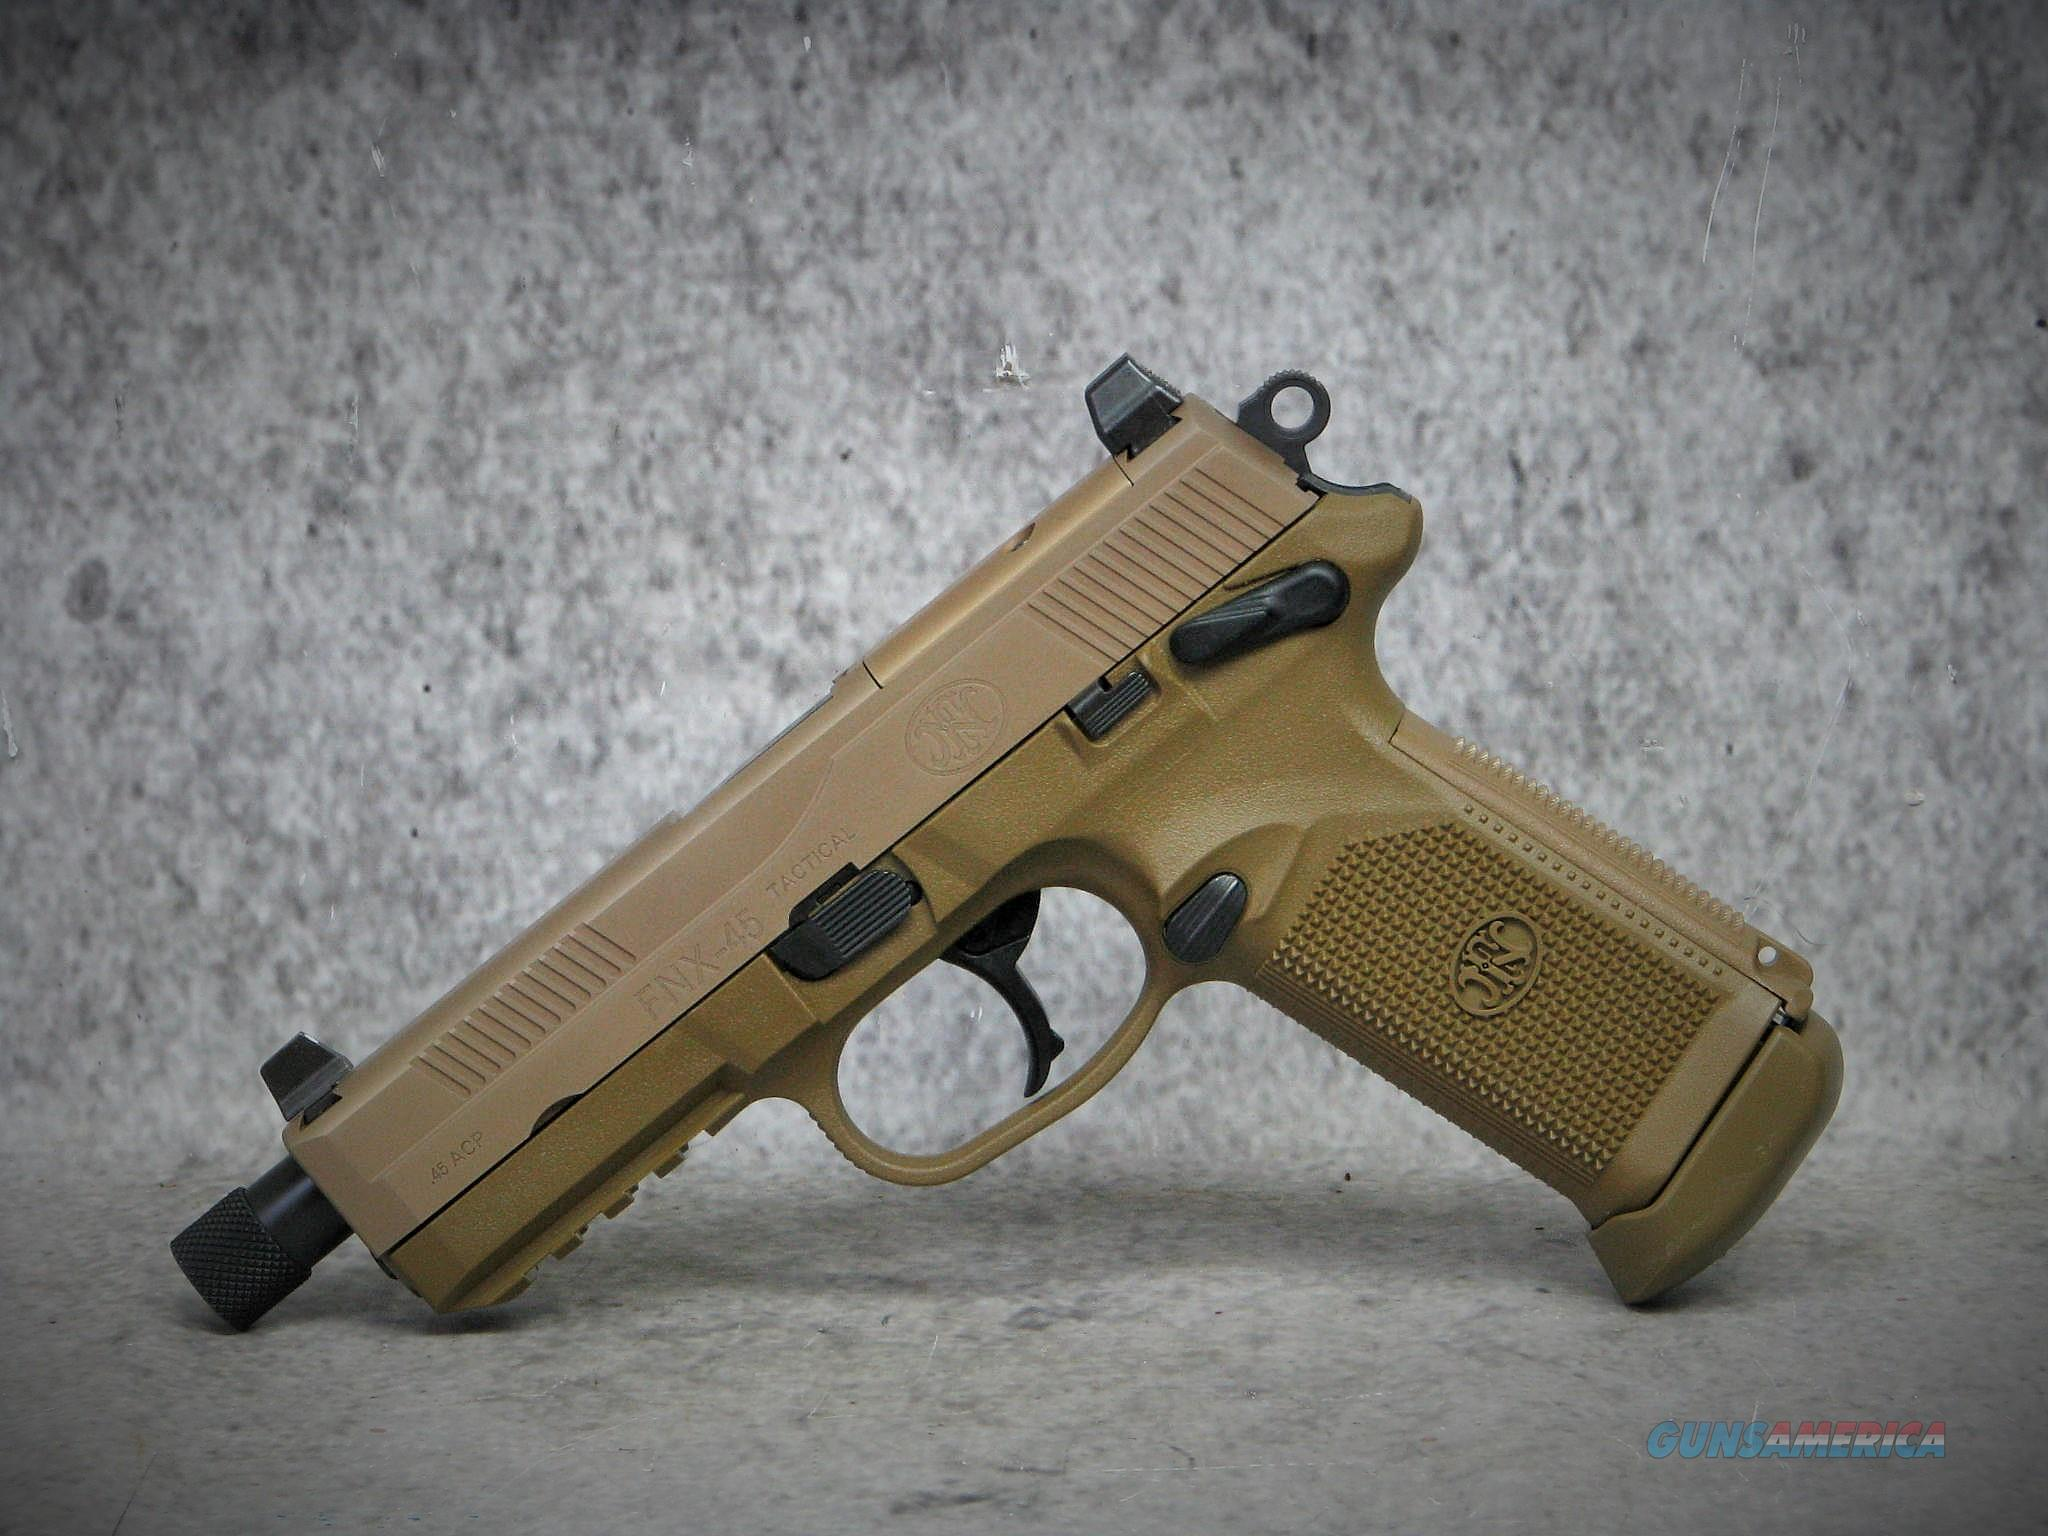 Fn Fnx 45 Tactical 45 66968 Easy Pay 70 Month For Sale